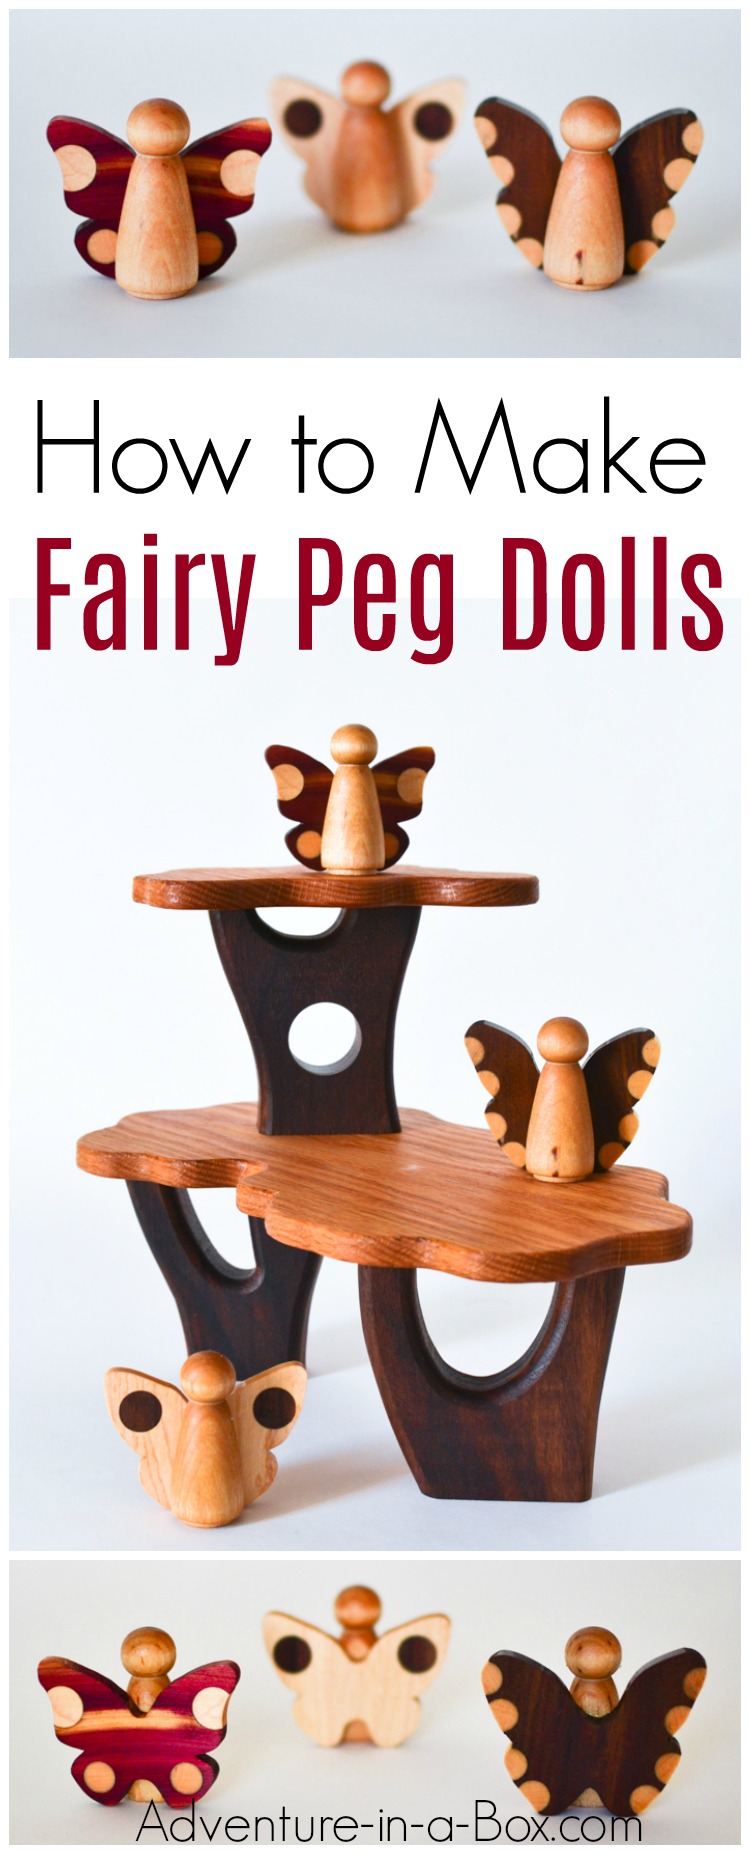 A tutorial on how to turn peg dolls into wooden fairies. A sturdy eco-friendly toy for Walforf classrooms and playrooms.